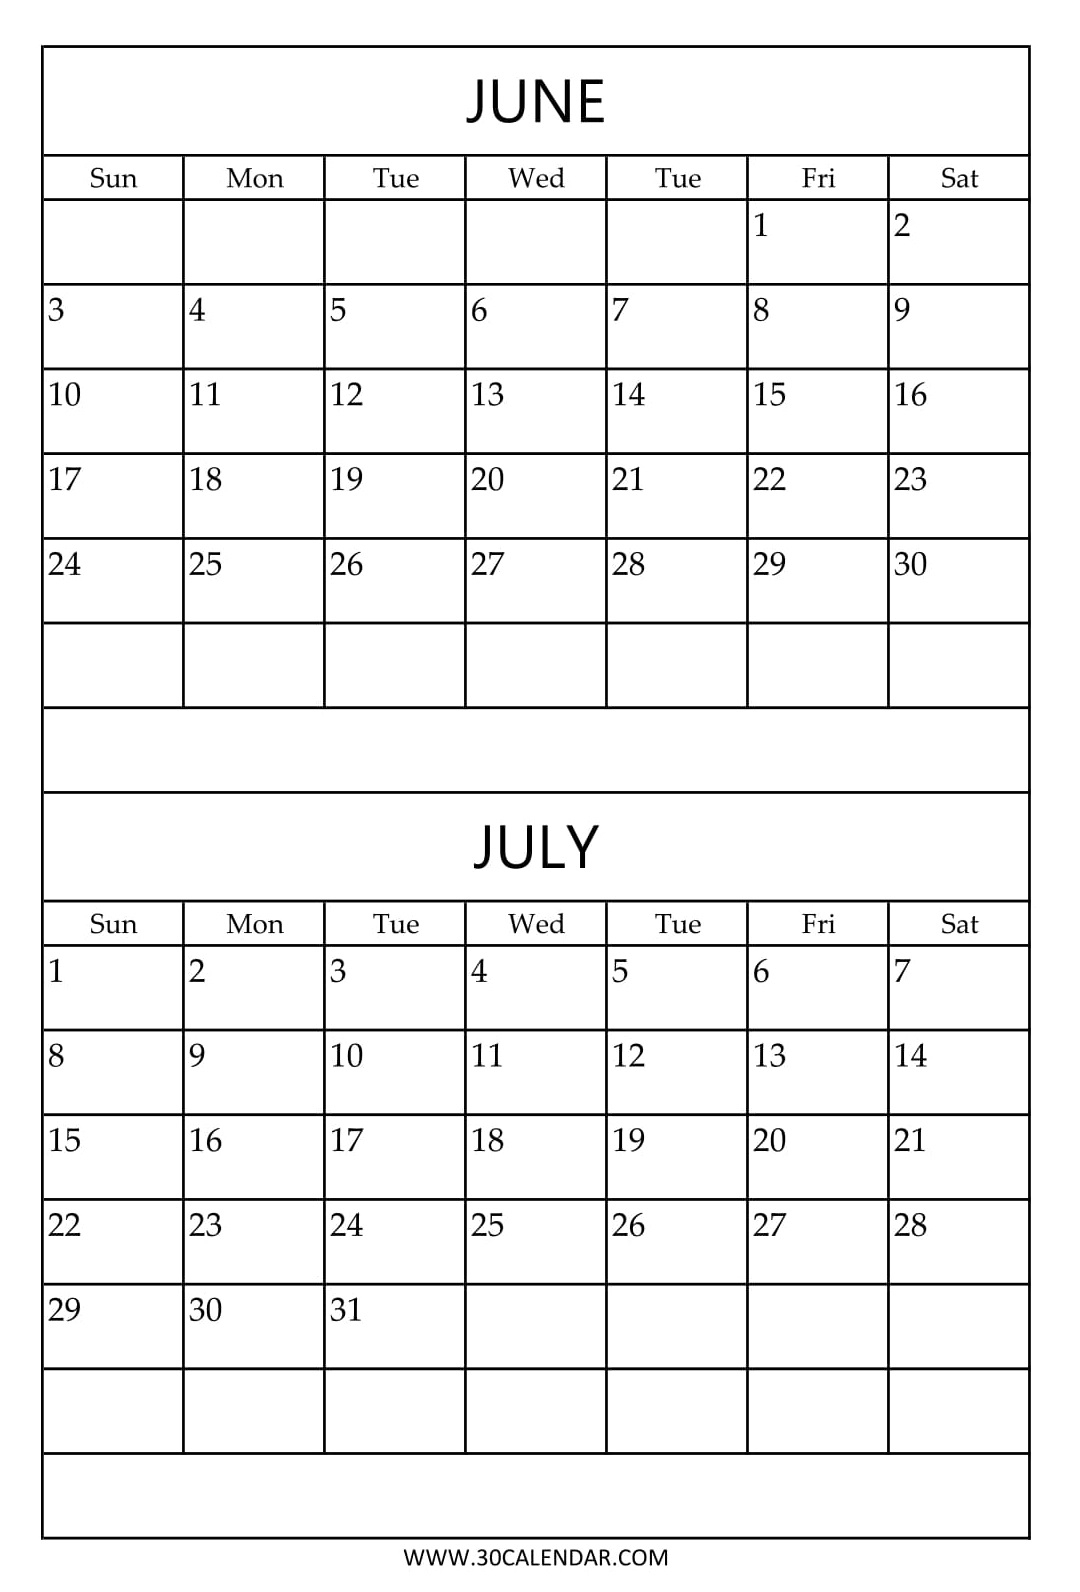 june and july calendar Zlatan.fontanacountryinn.com